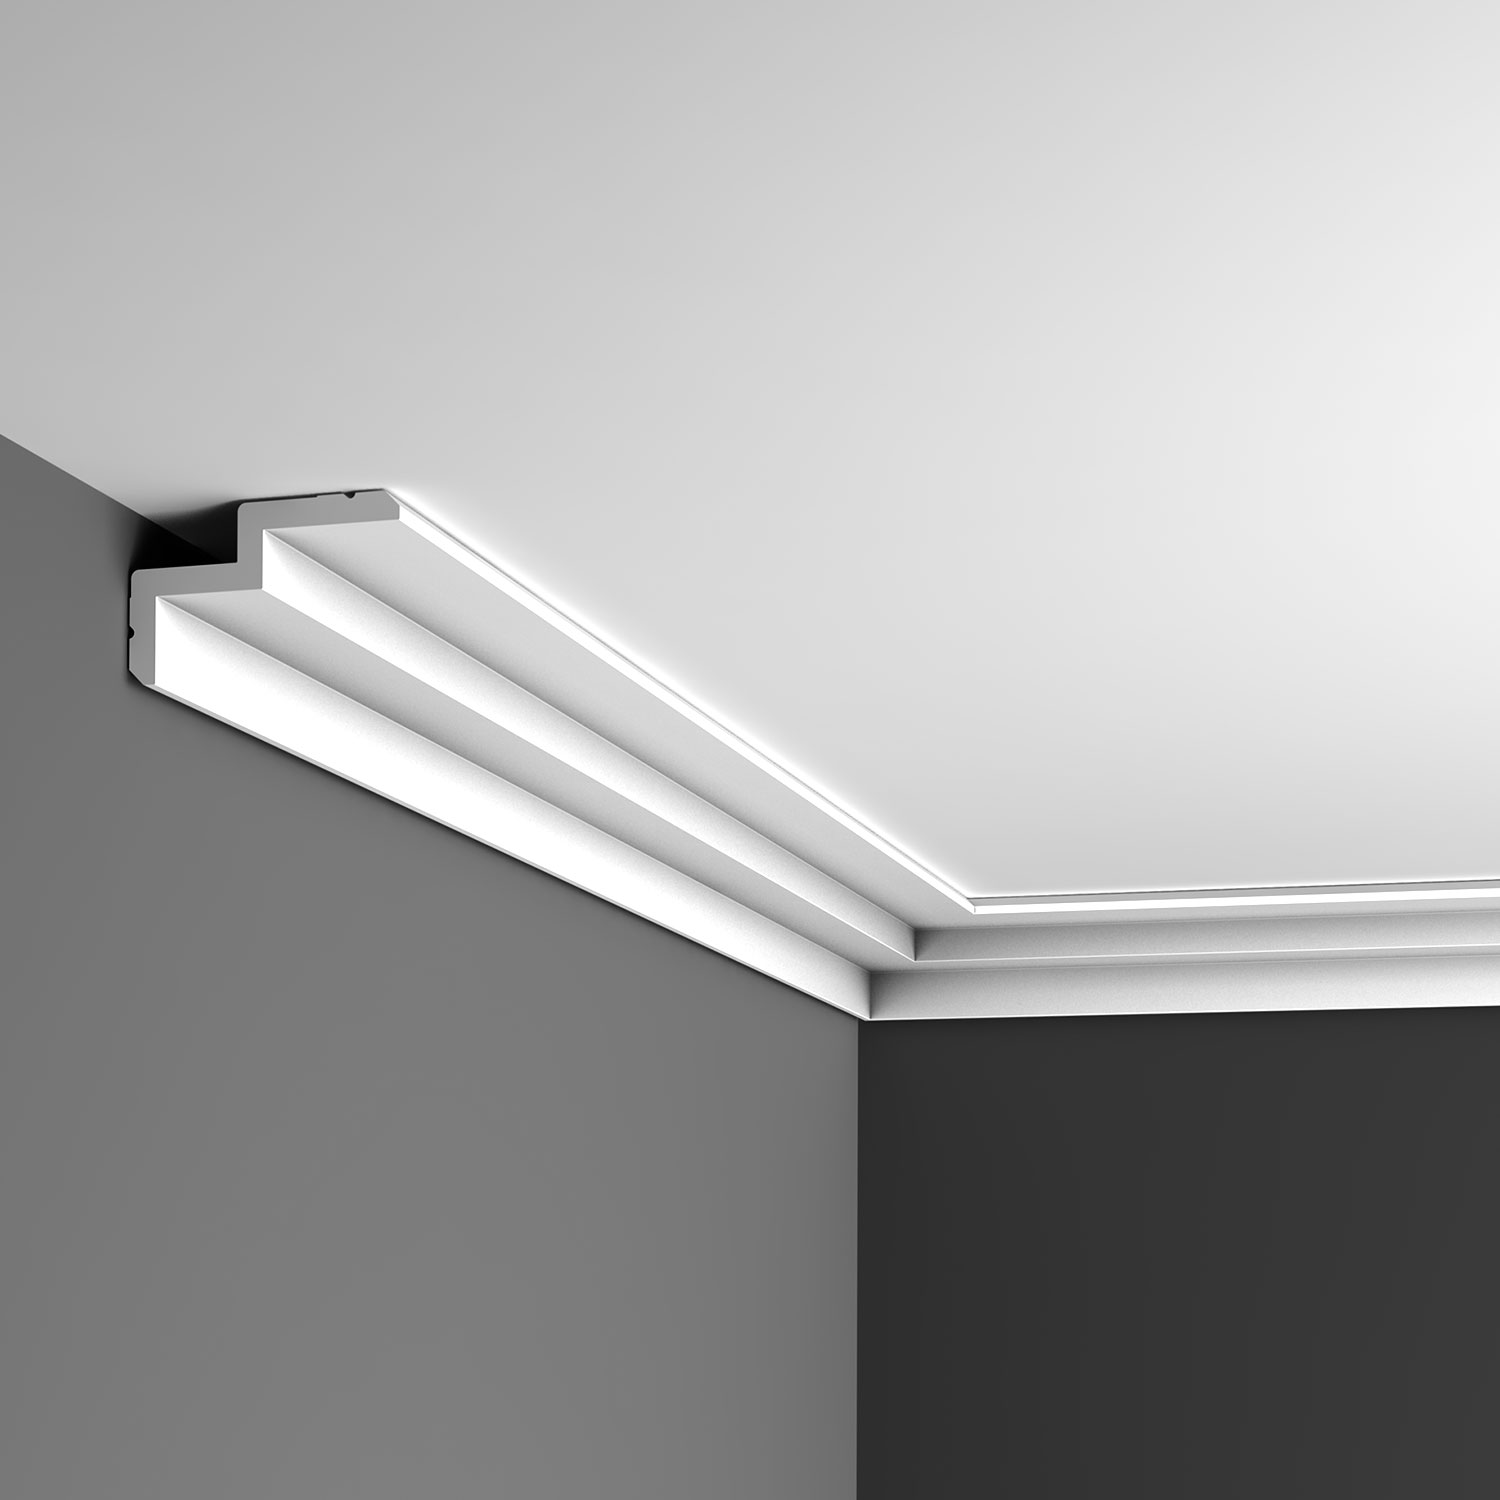 c351 boat lighting coving led indirect lighting moulding crown for lighting led cornice